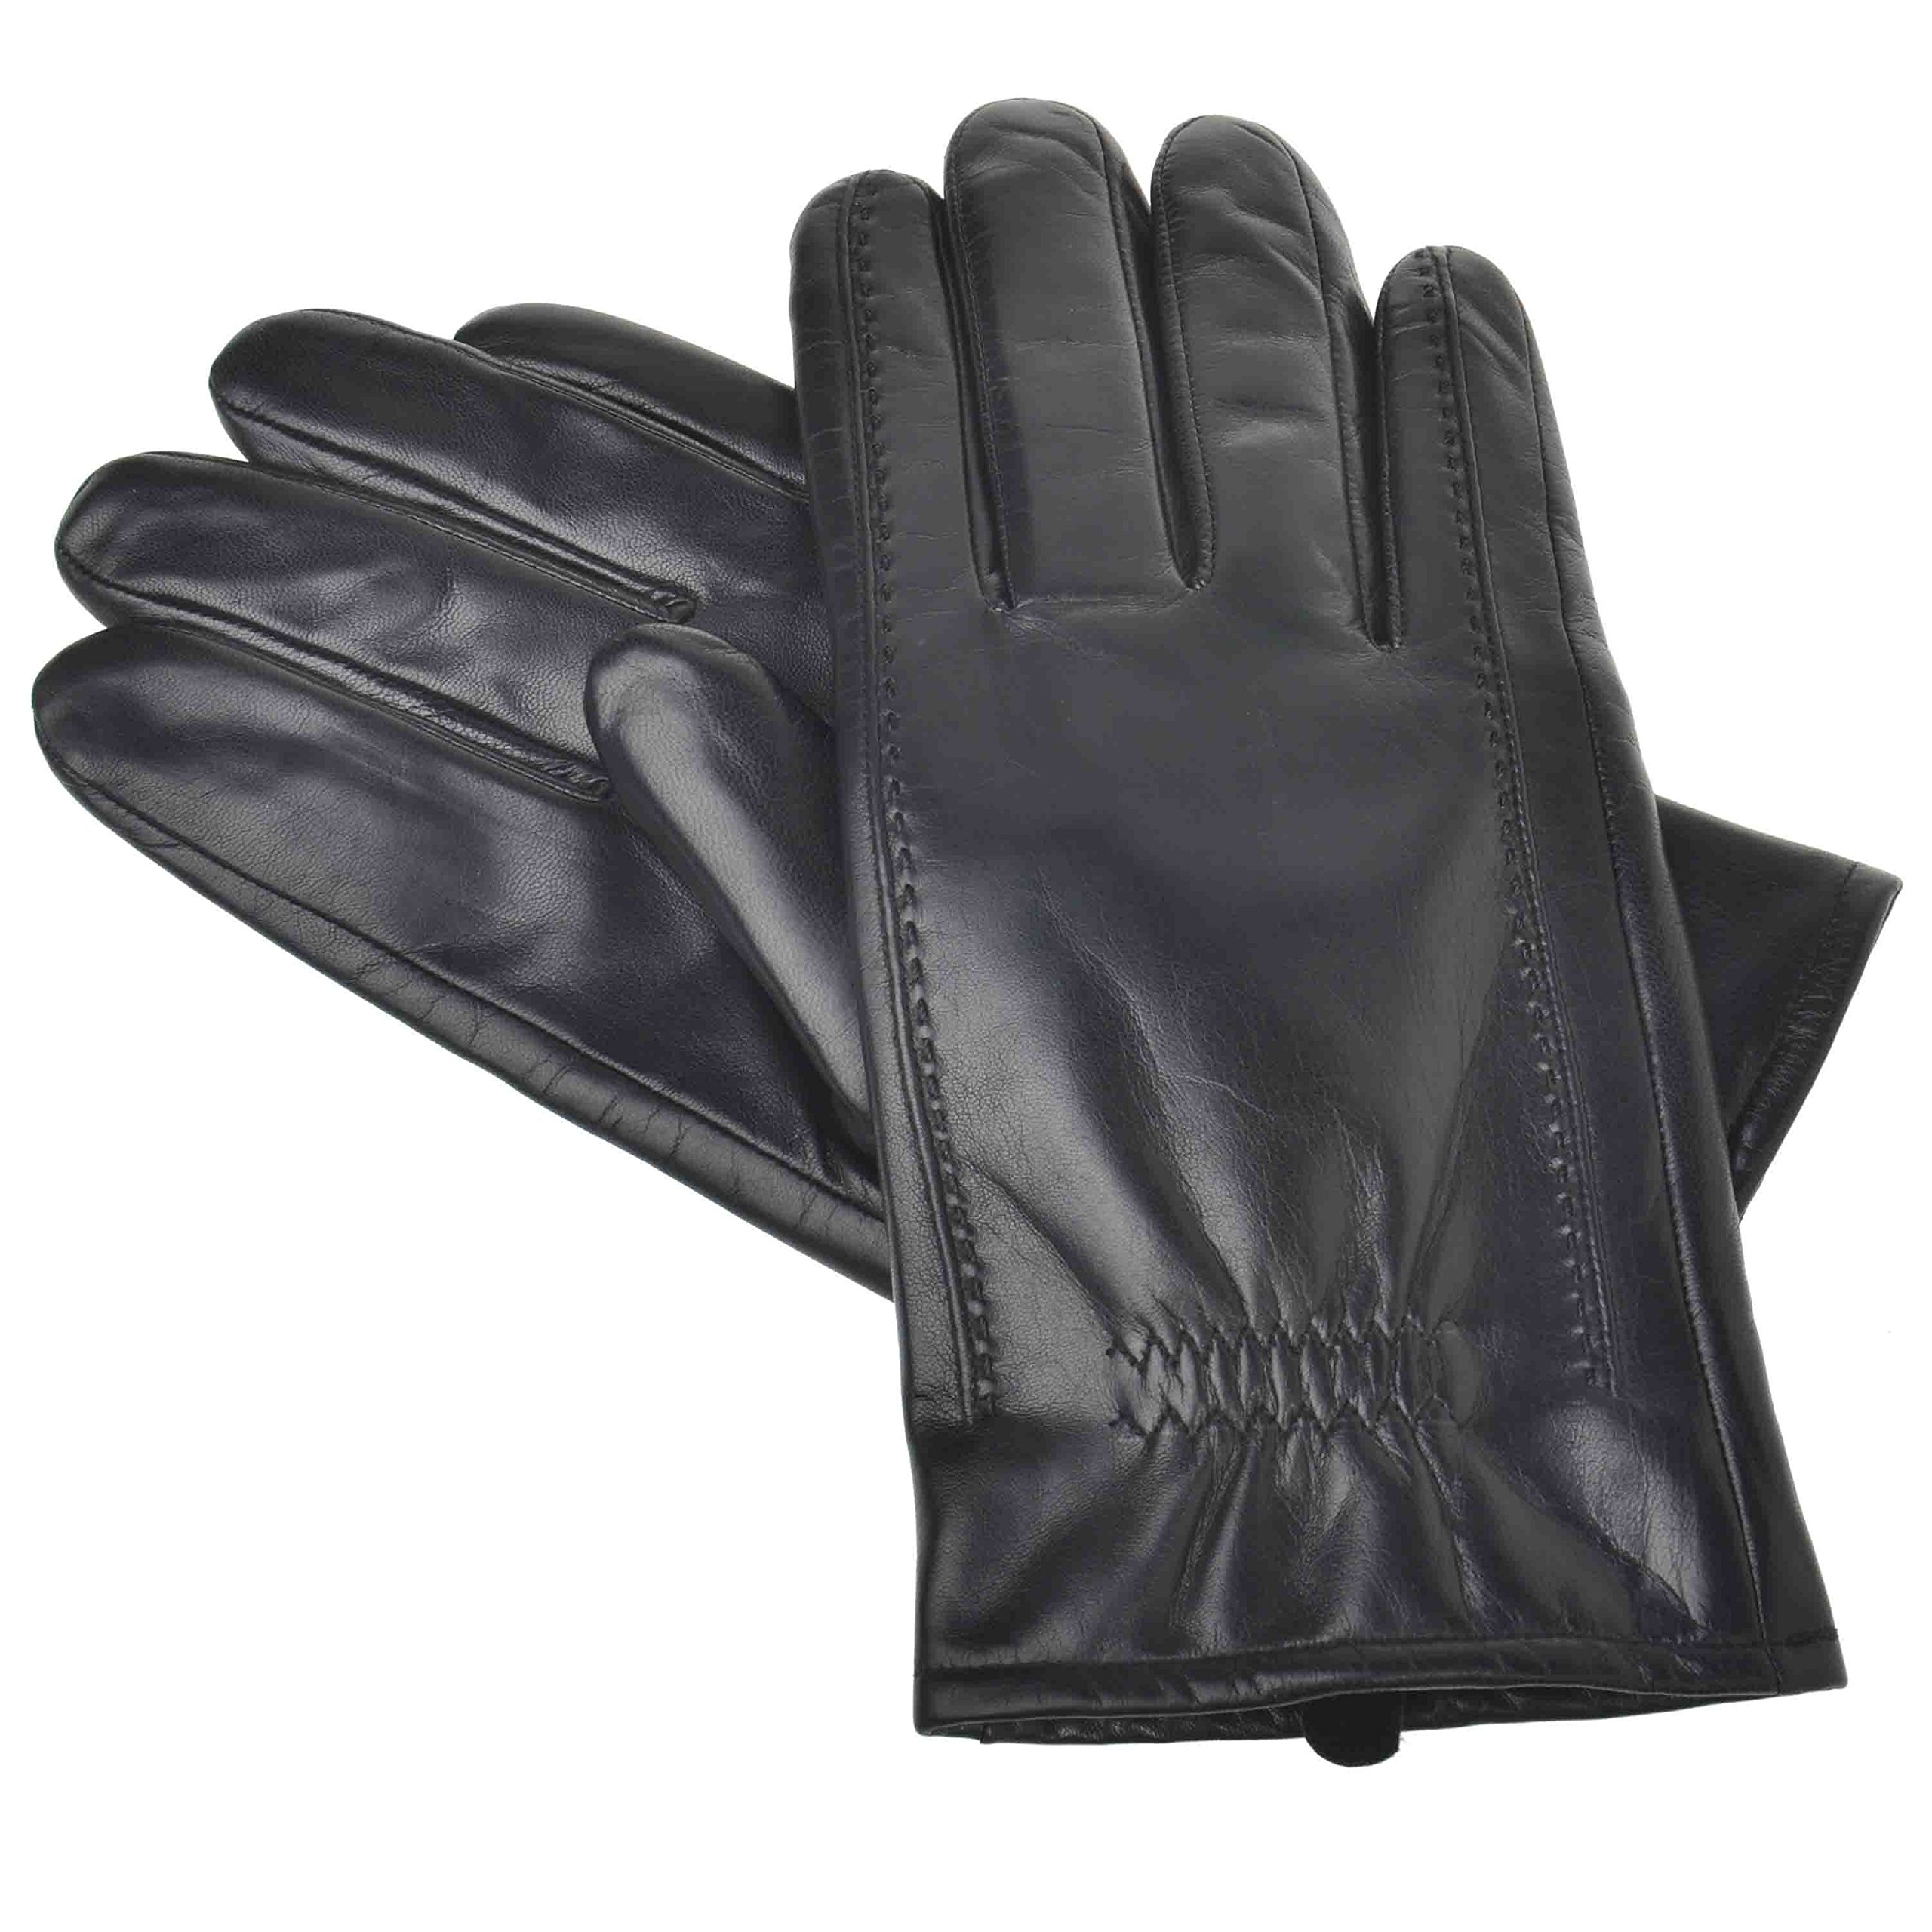 YISEVEN Men's Buttery-Soft Lambskin Leather Gloves Fleece Lined for Spring or Winter Hand Warm Fur Heated Lining Dress and Motorcycle Driving Real Luxury Stylish Holiday Xmas Gift, Black 9''/Medium